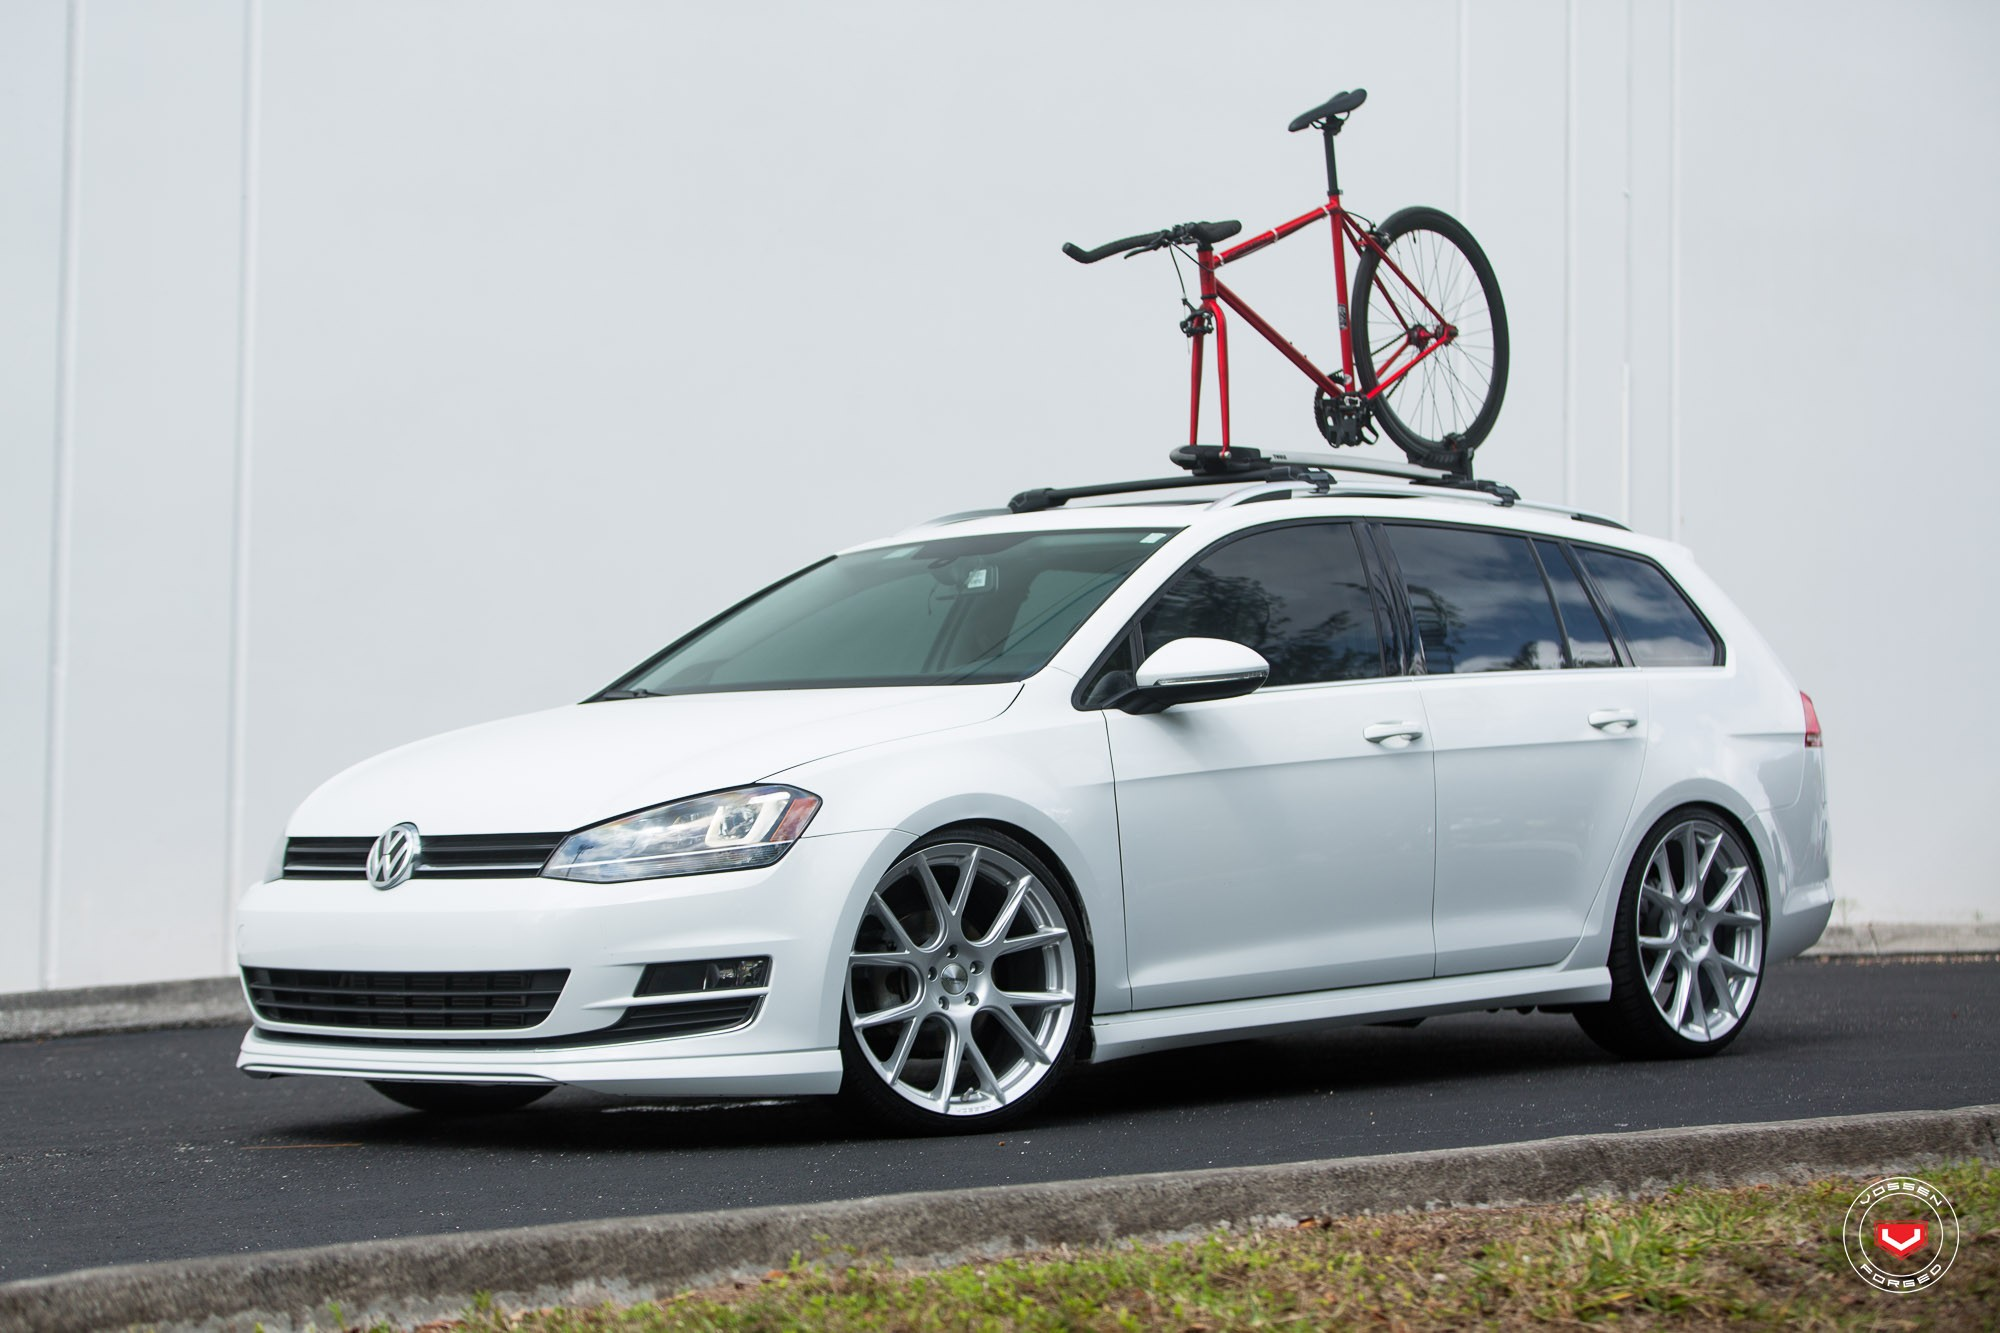 Golf Gti Mk7 Tuning >> New Volkswagen Golf SportWagen Gets Vossen Wheels - autoevolution